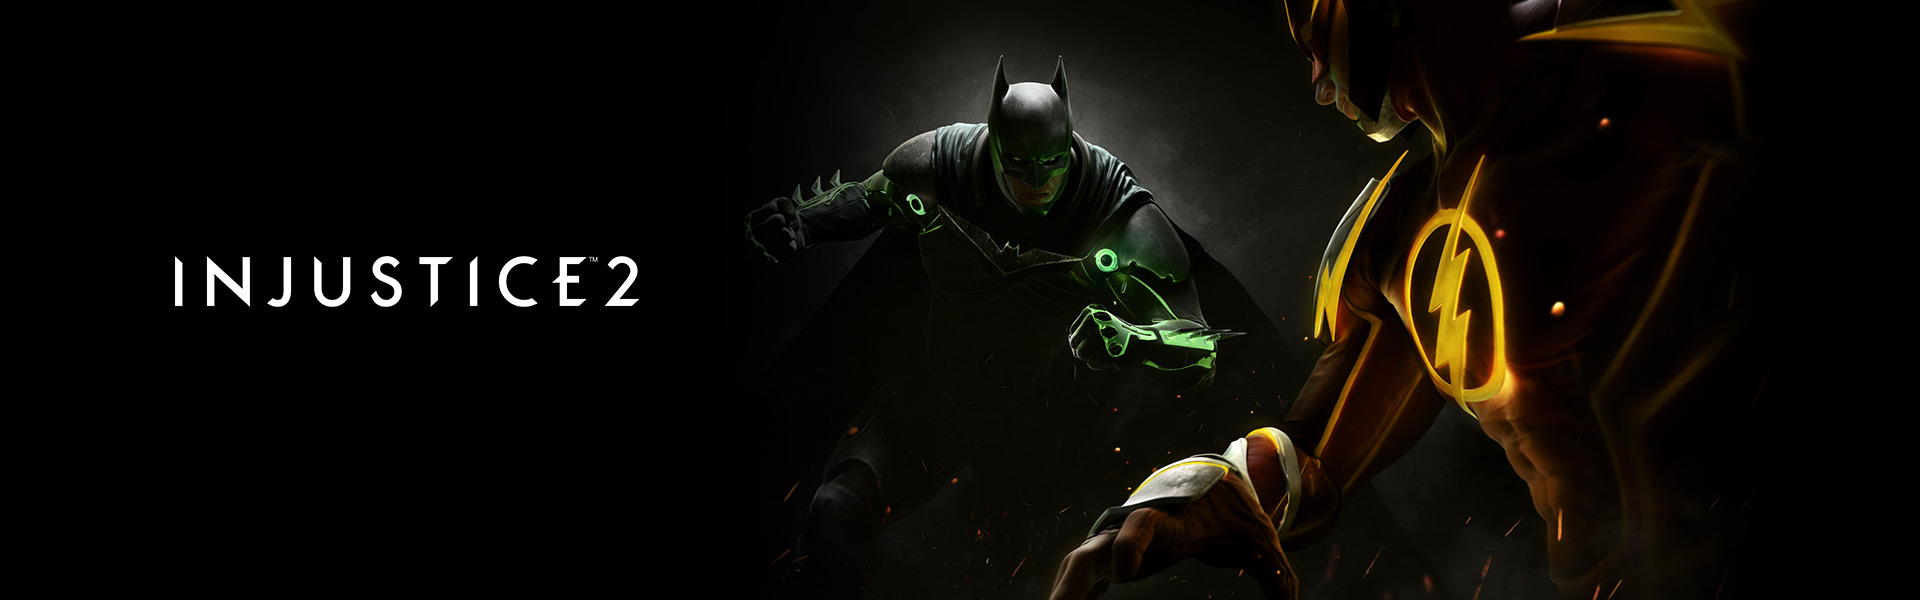 Injustice 2,Batman 和 The Flash 對戰的深色影像